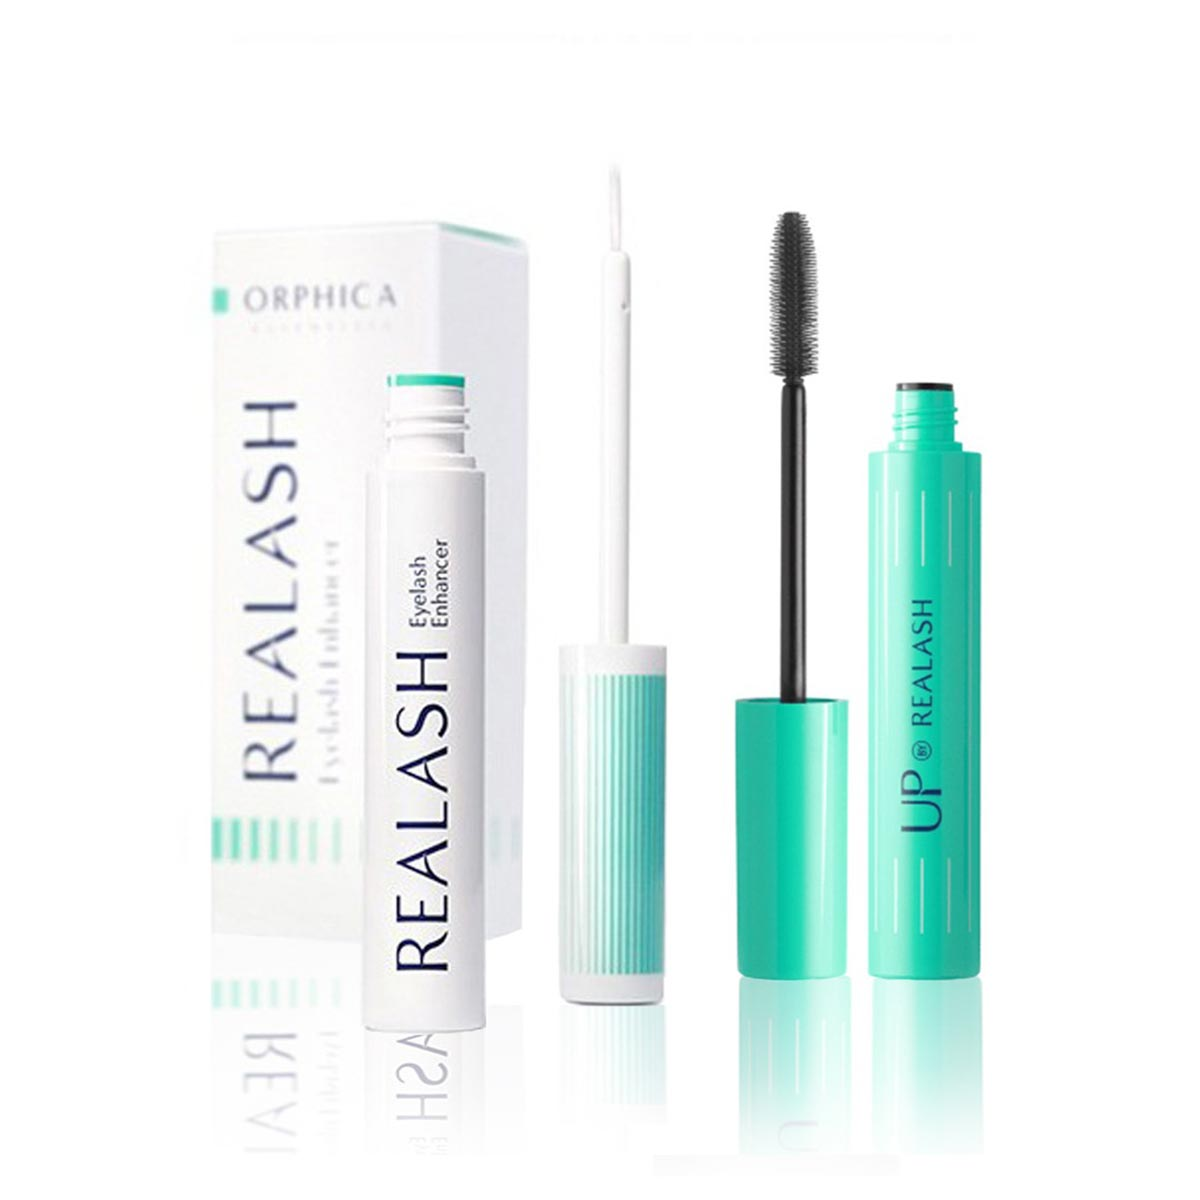 Orphica-Realash-Eyelash-Enhancer-4-ml-+-Orphica-Up-Mascara-6-ml-Miss-Eco